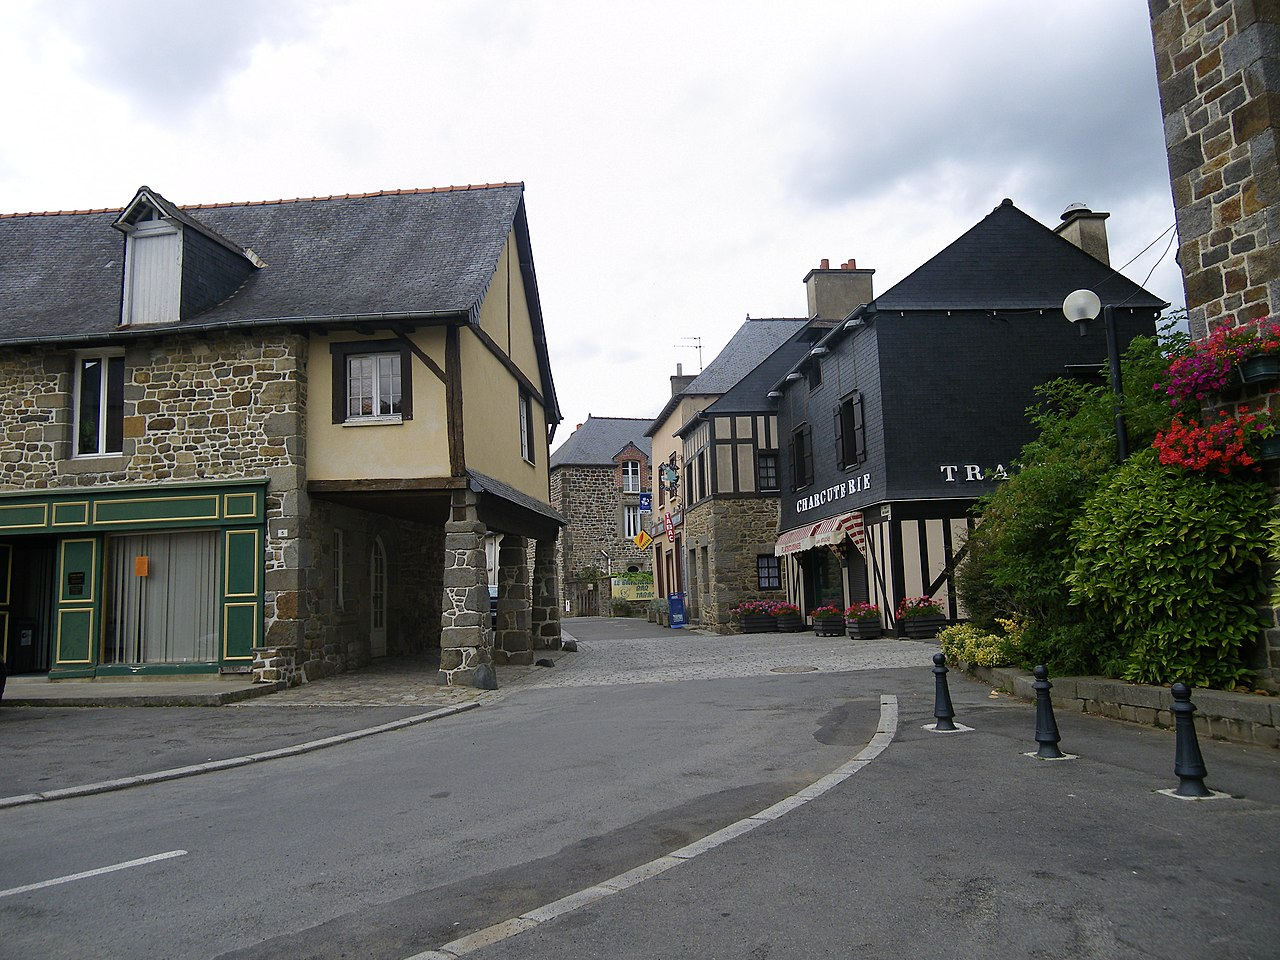 File:Maisons anciennes a tinteniac - panoramio.jpg - Wikimedia Commons